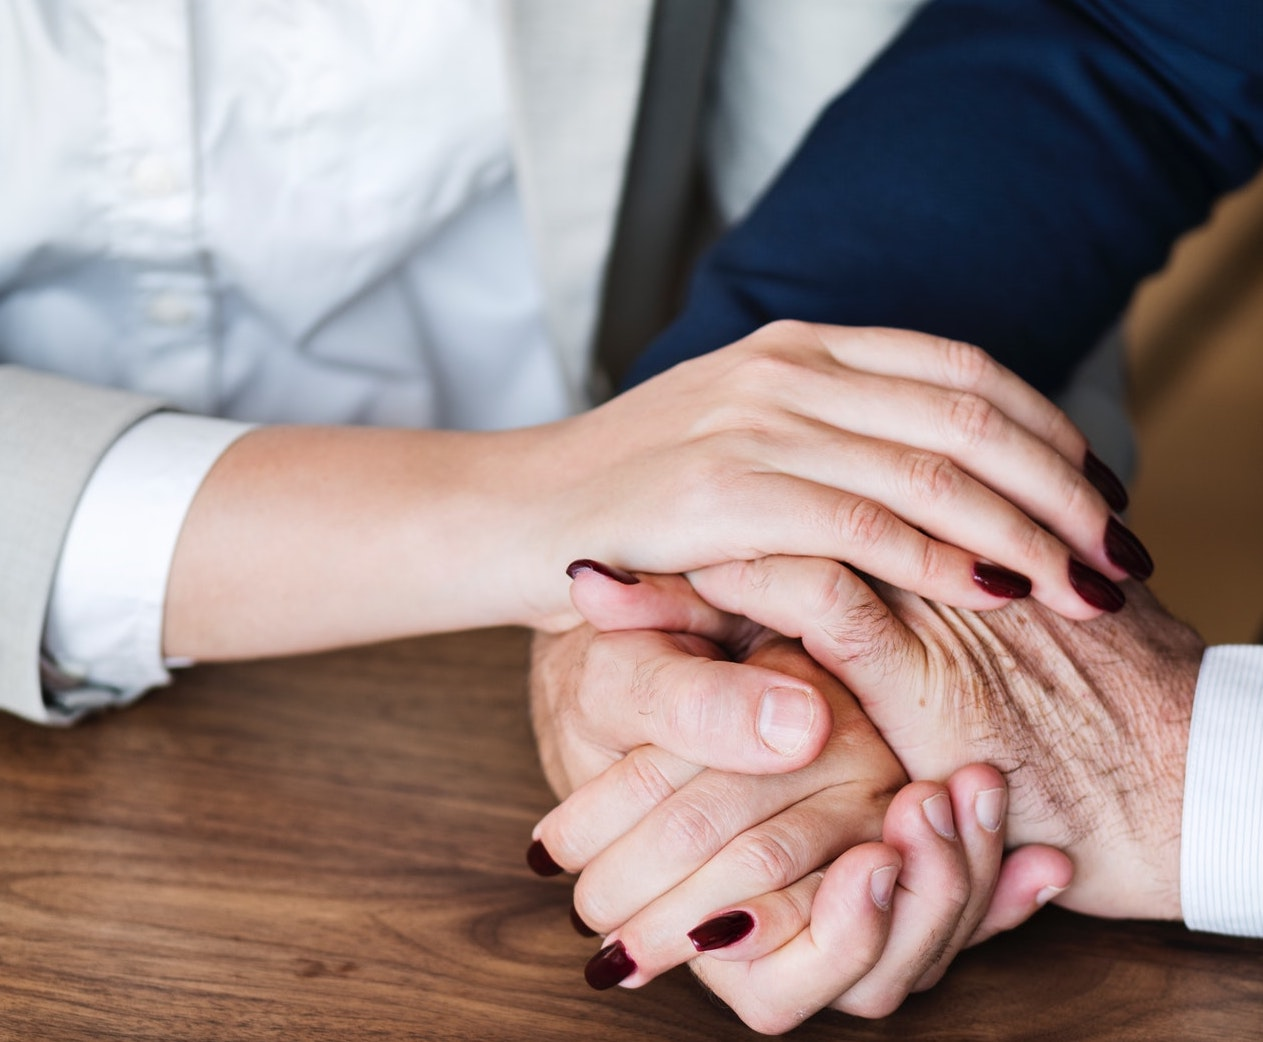 How Can Family Caregivers Help Solve the Caregiver Shortage?